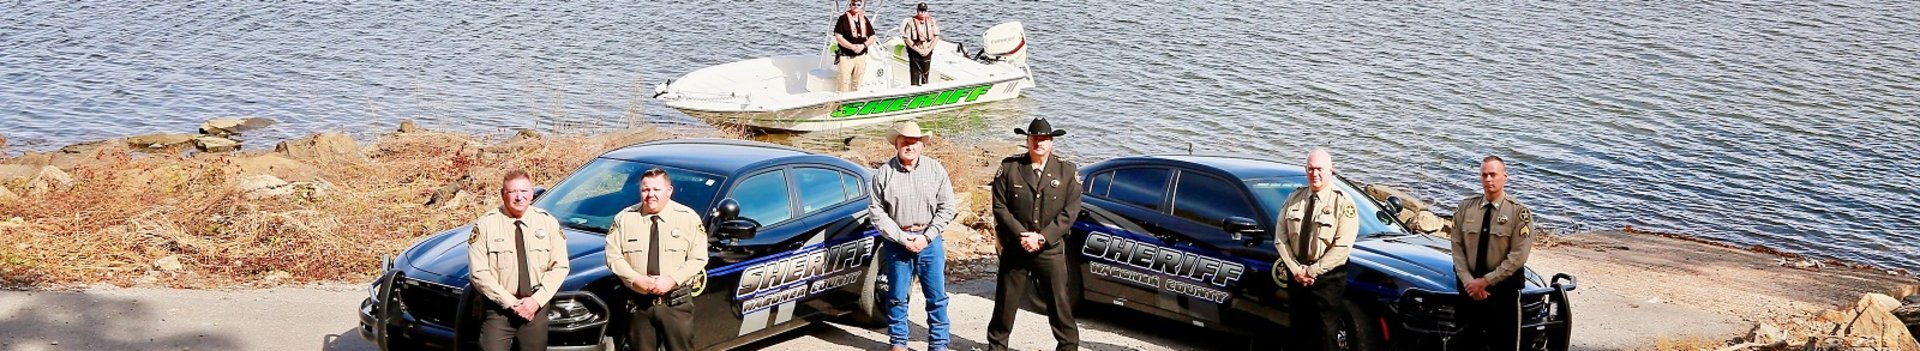 Wagoner County Sheriff's Office employees standing in front of patrol cars and boat